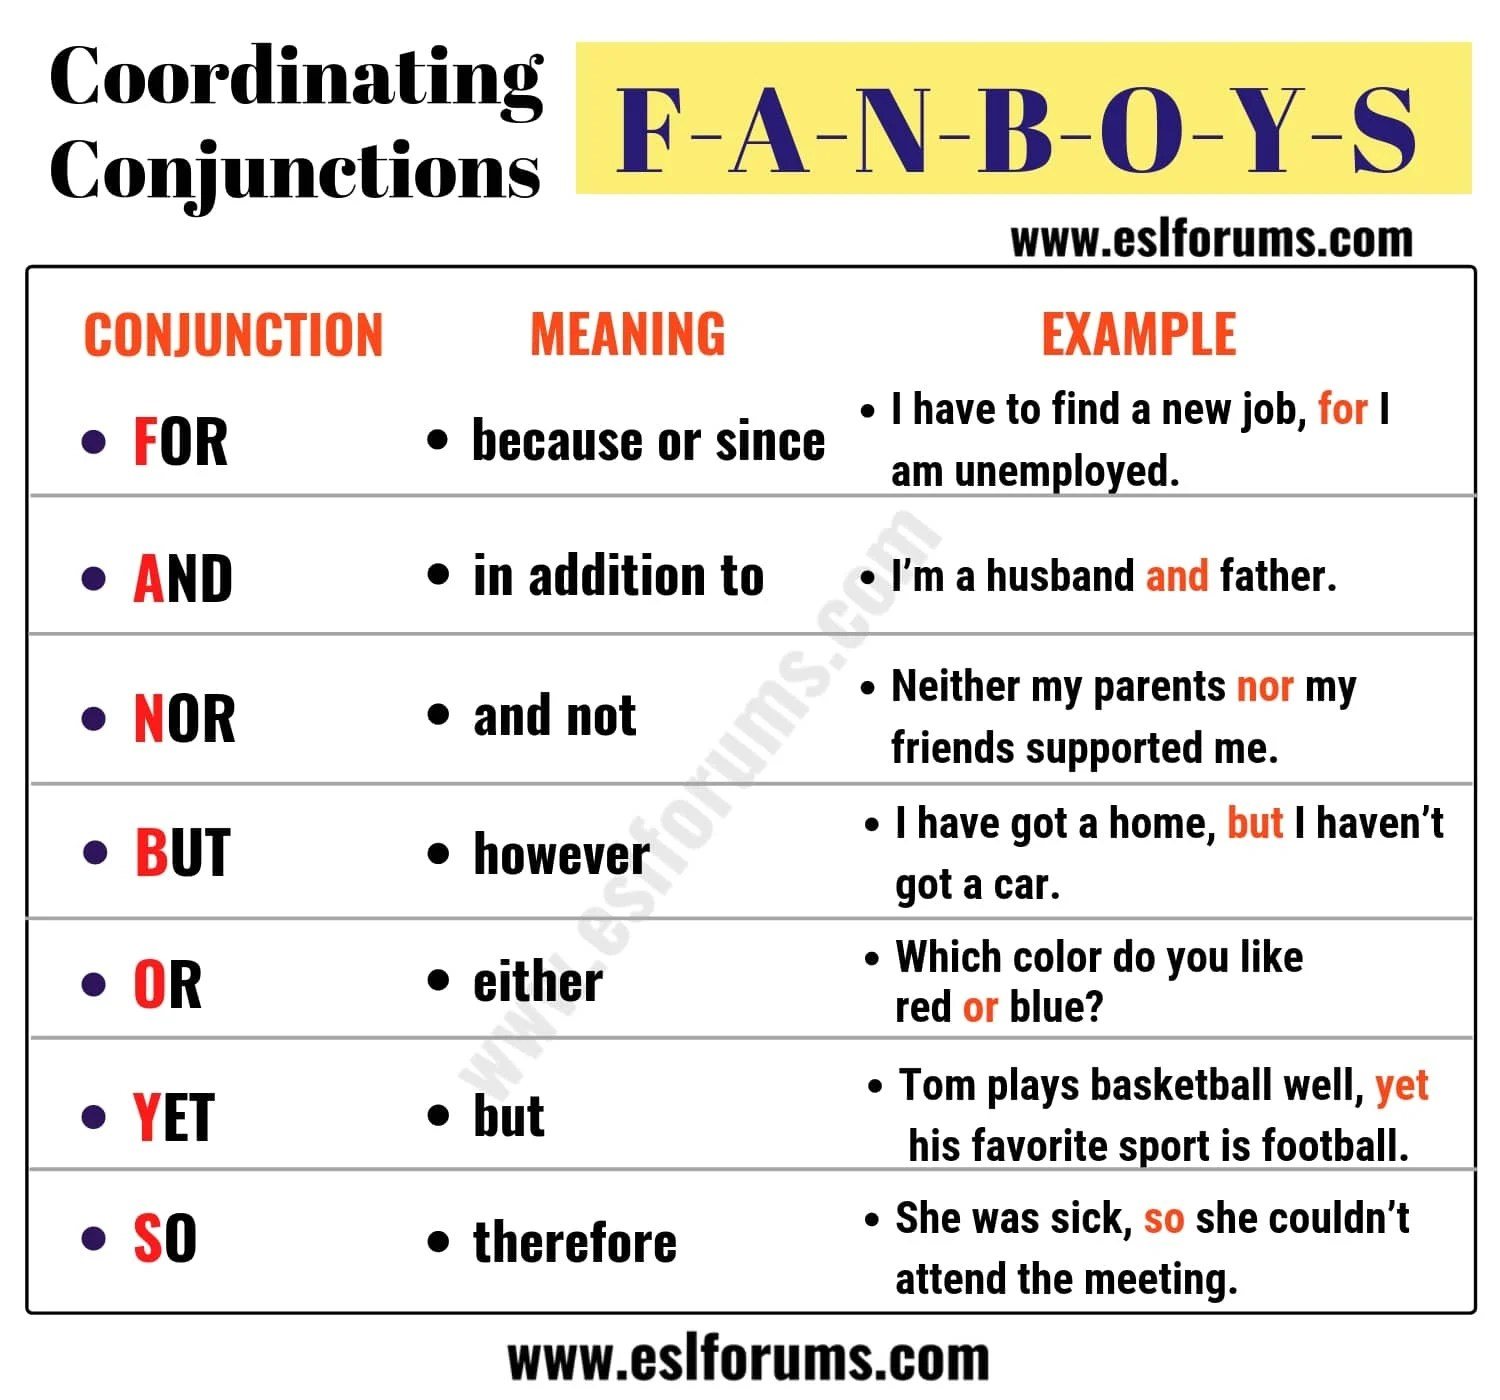 hight resolution of Coordinating Conjunctions Sentences Worksheet   Printable Worksheets and  Activities for Teachers